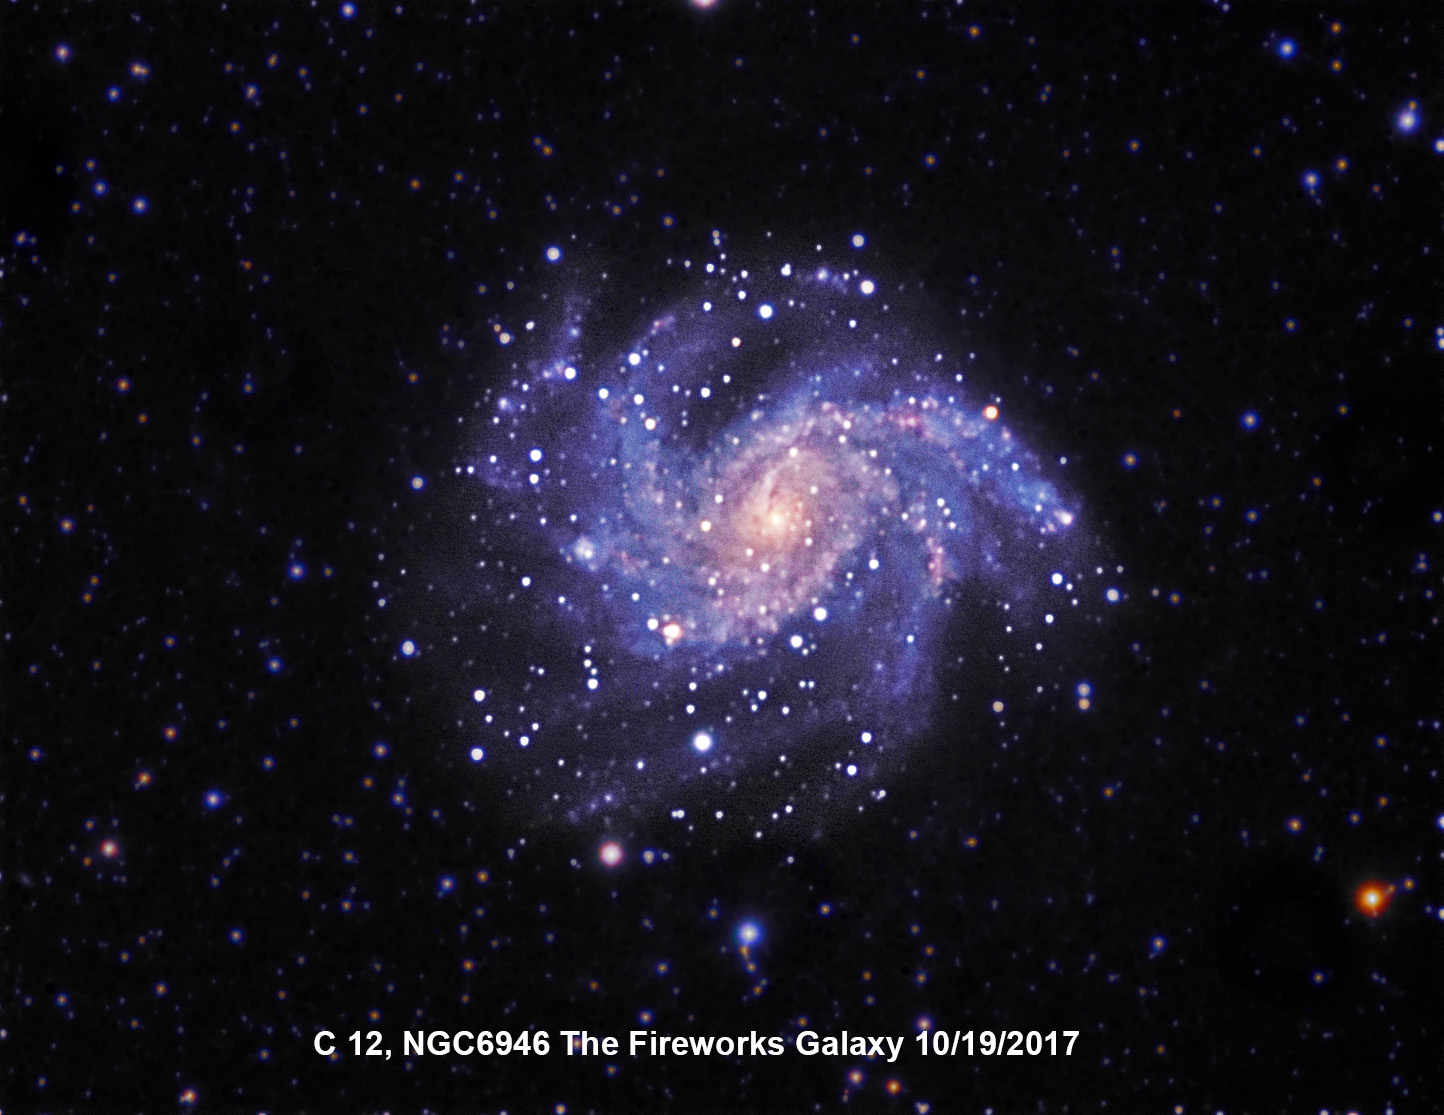 C12 NGC6946 Fireworks Galaxy Final